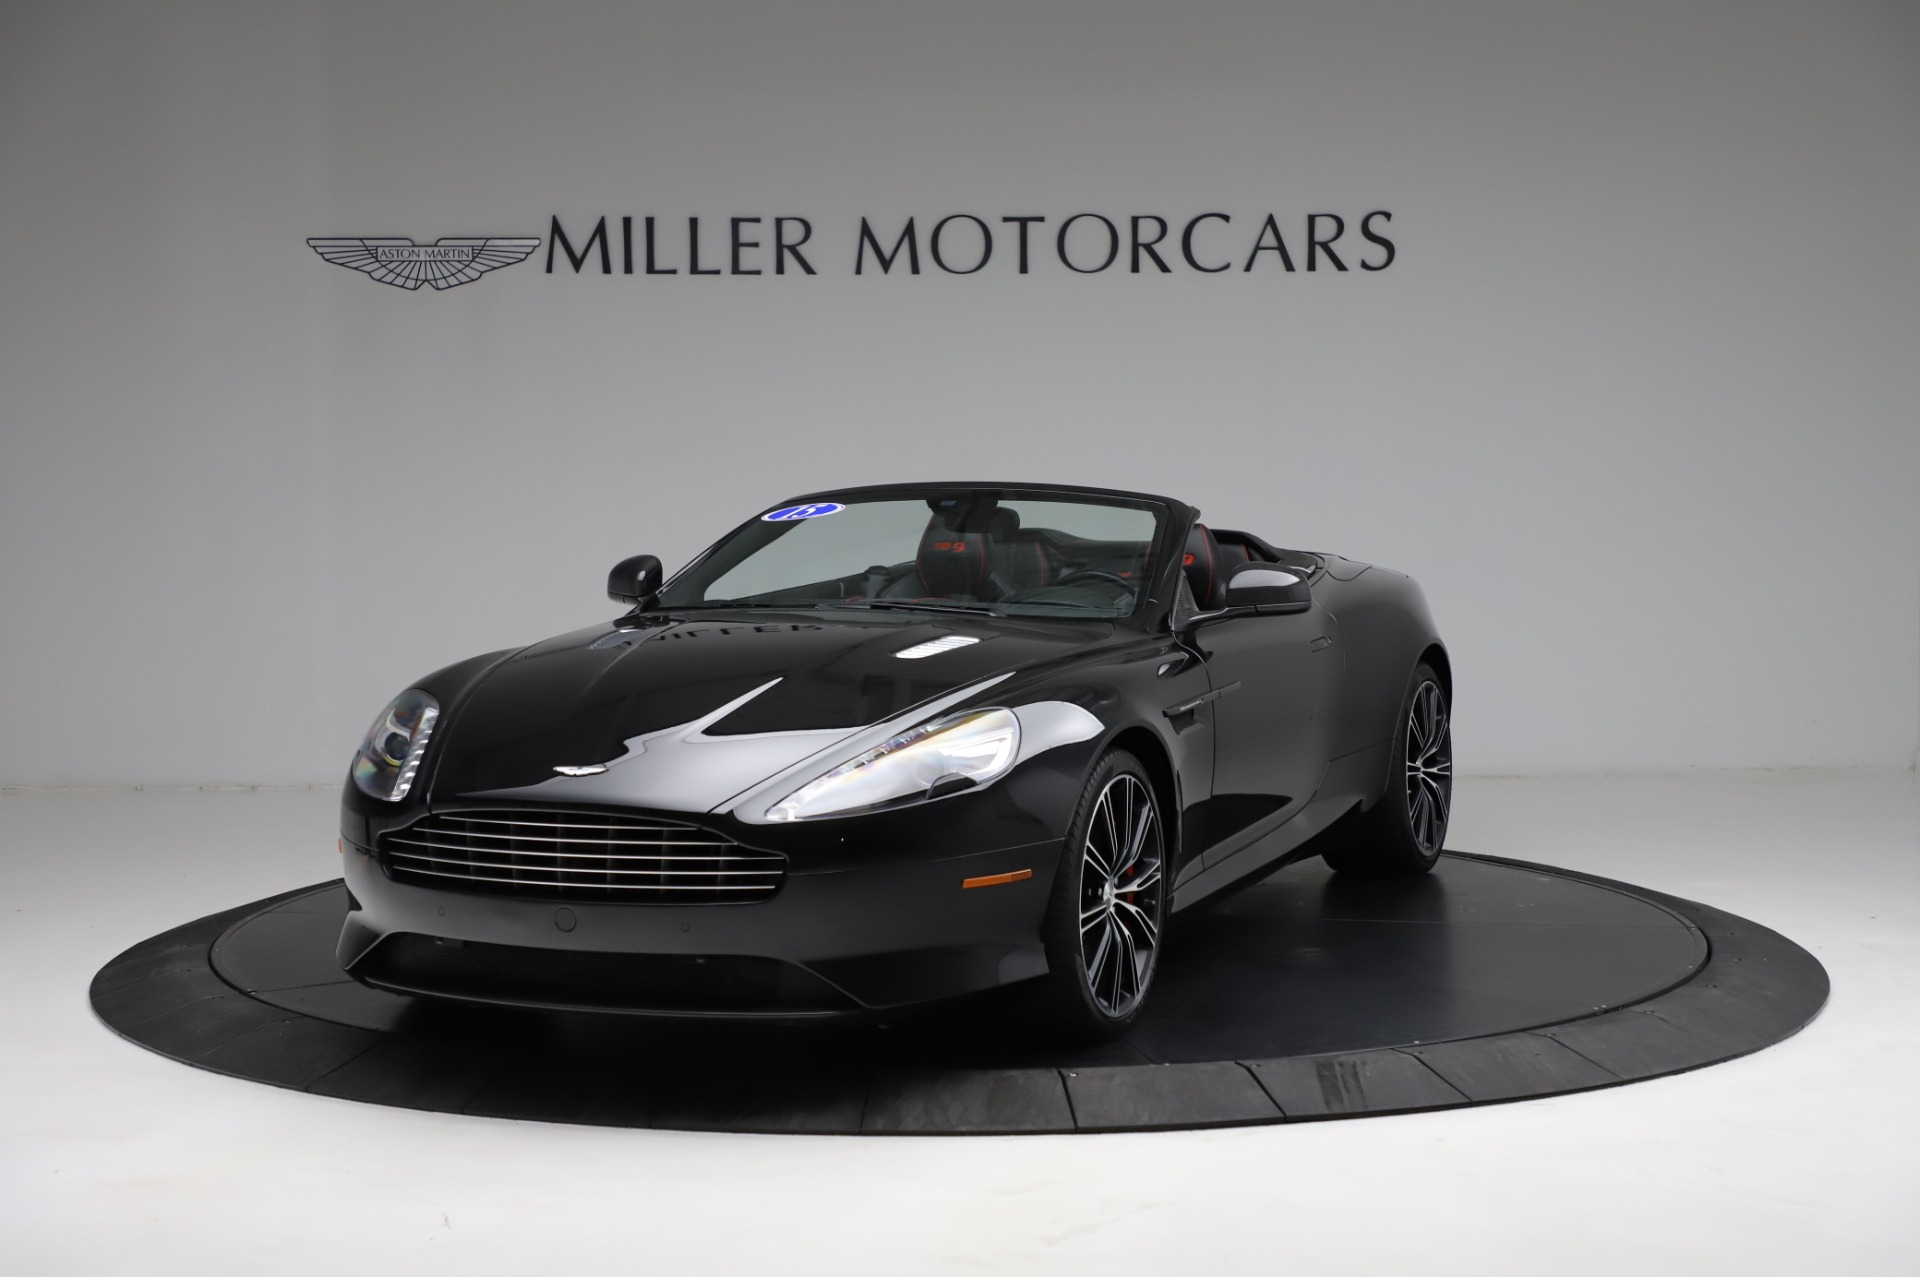 Used 2015 Aston Martin DB9 Convertible For Sale In Greenwich, CT 1919_p12